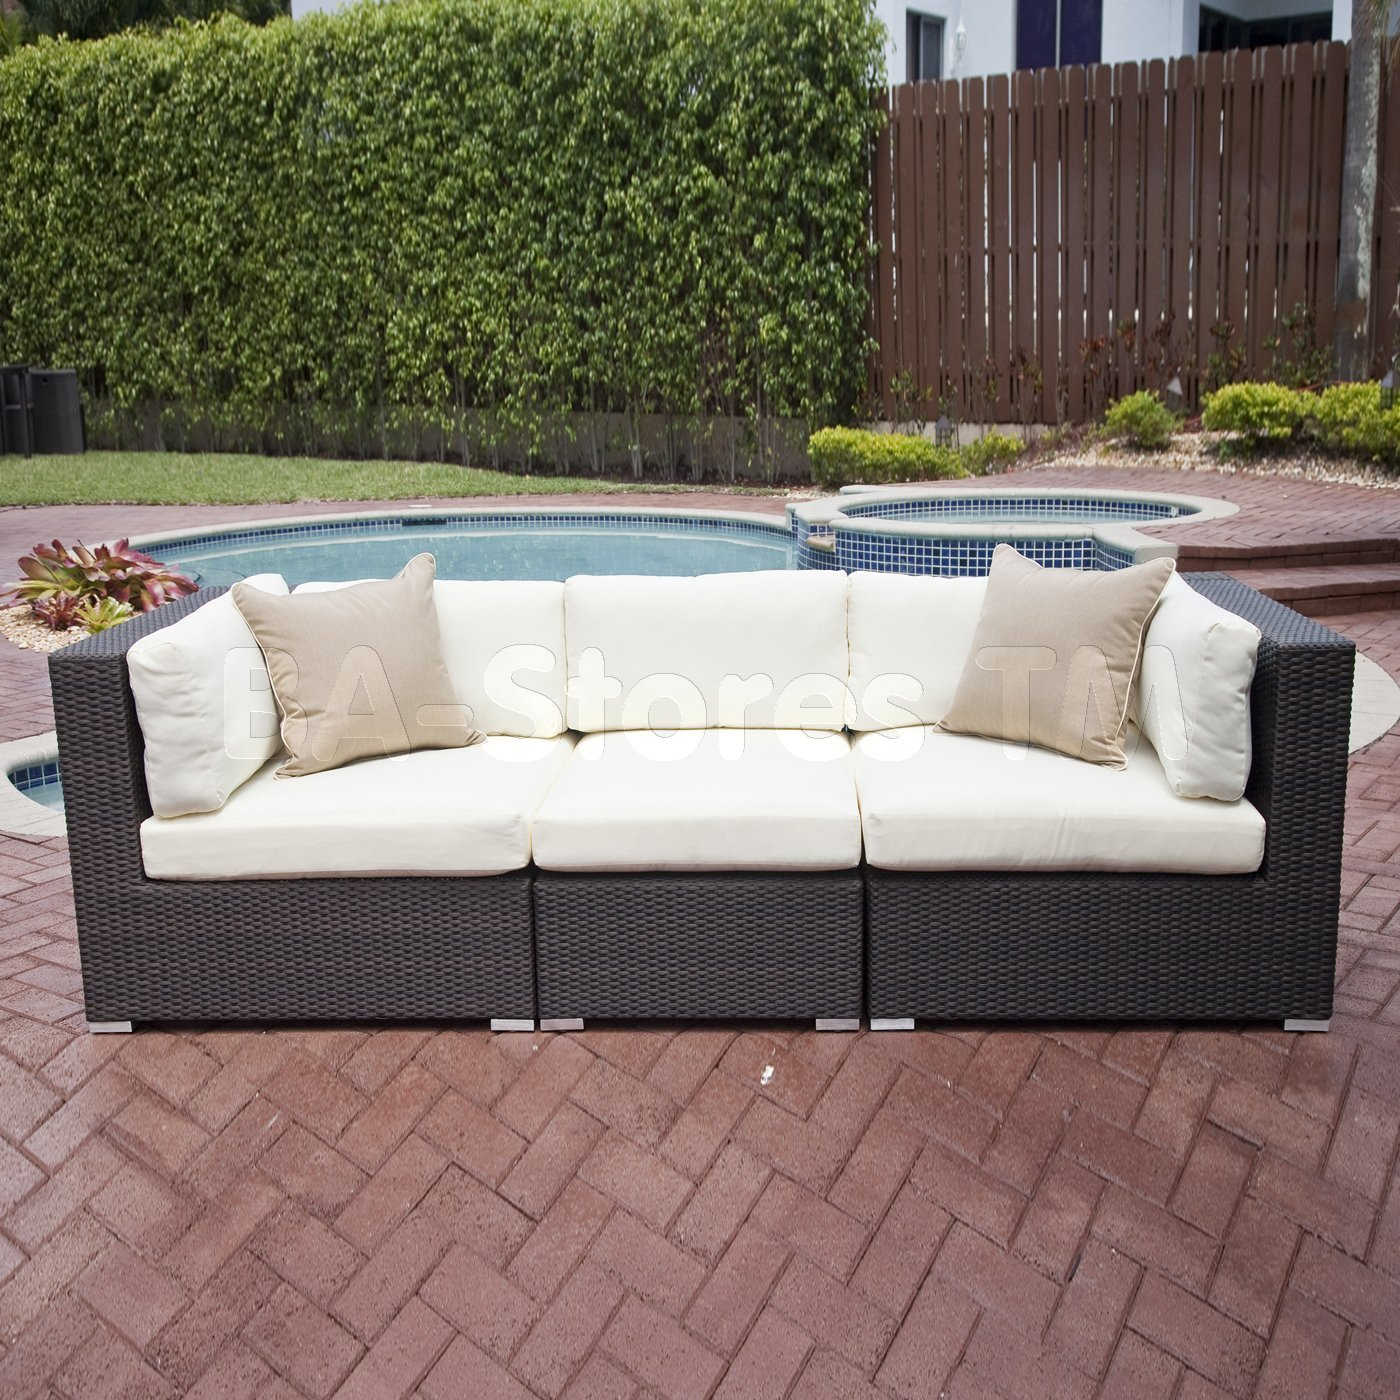 Calm And Relaxation With Patio Couch